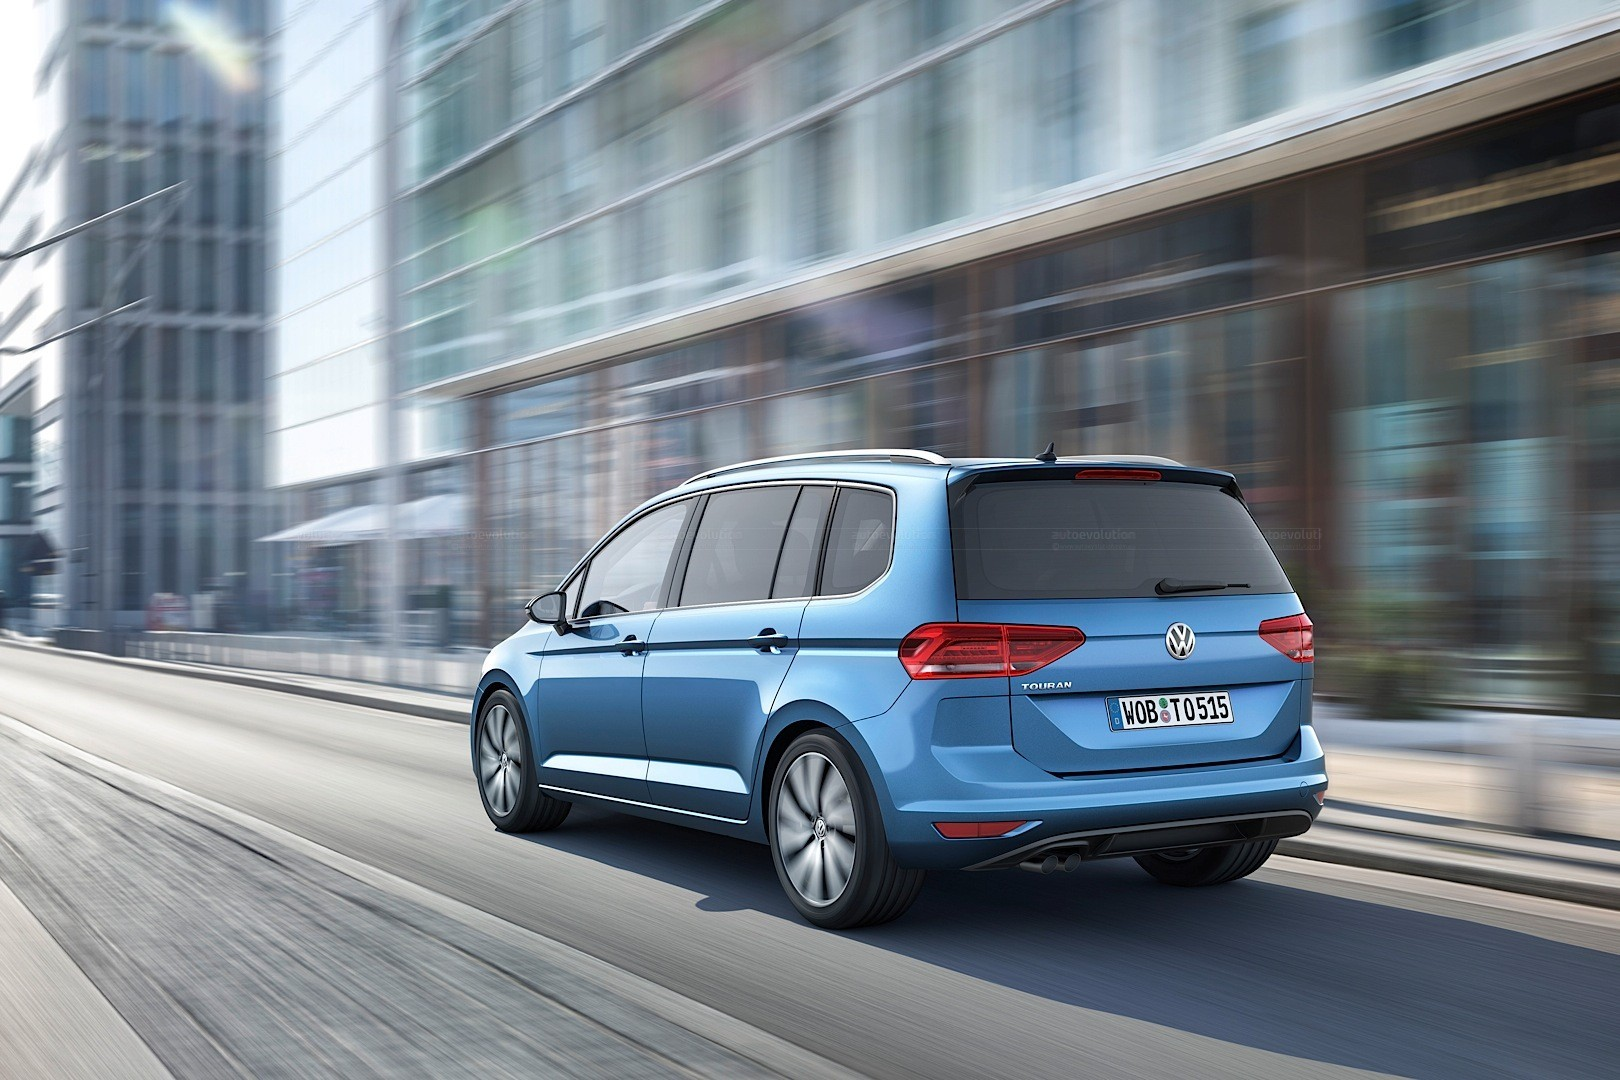 Volkswagen Touran Specs Amp Photos 2015 2016 2017 2018